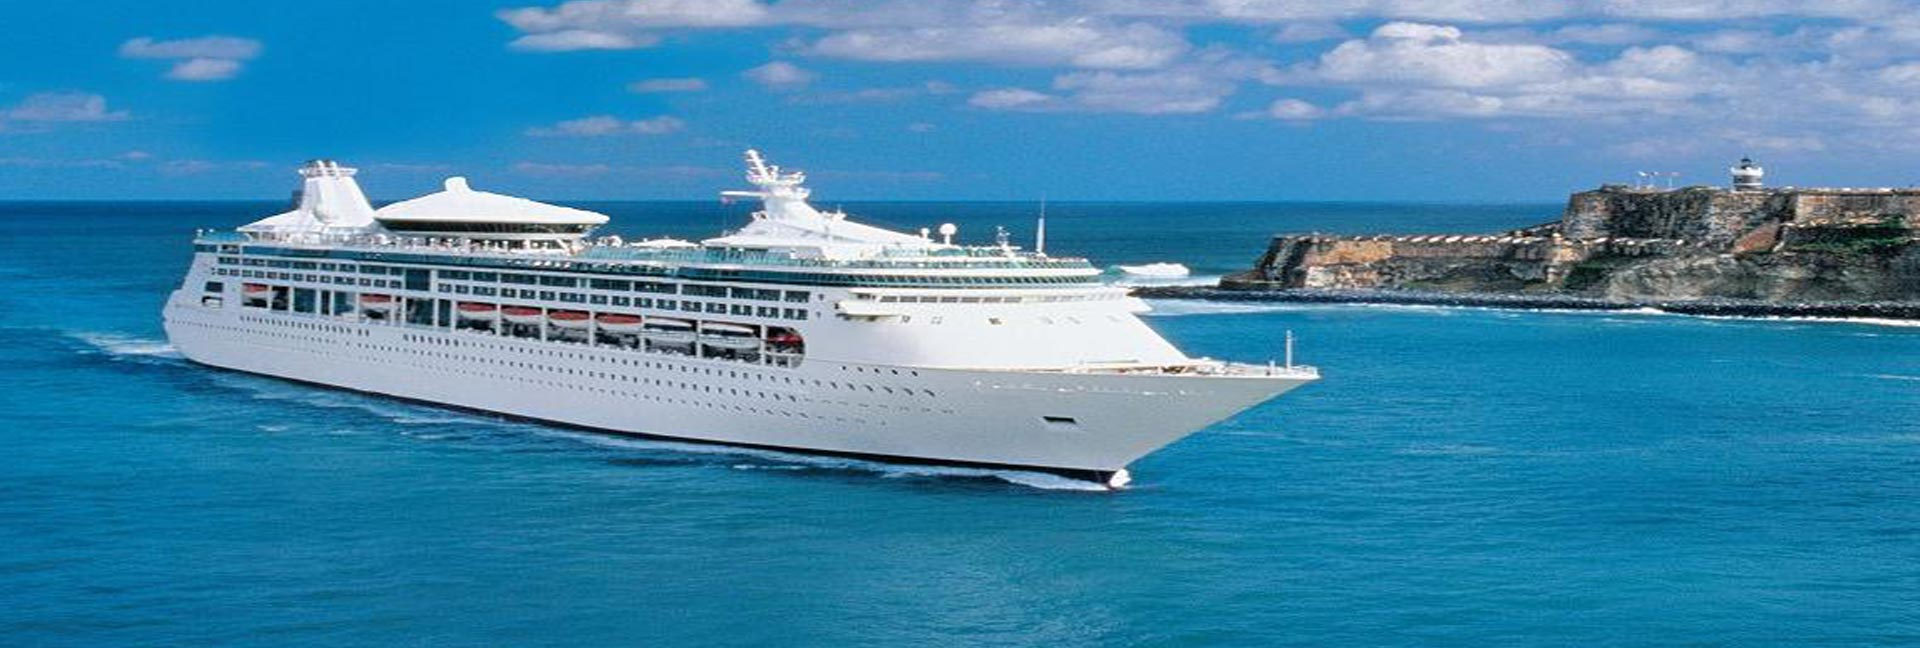 Celebrity Cruise Lines Destinations Casino